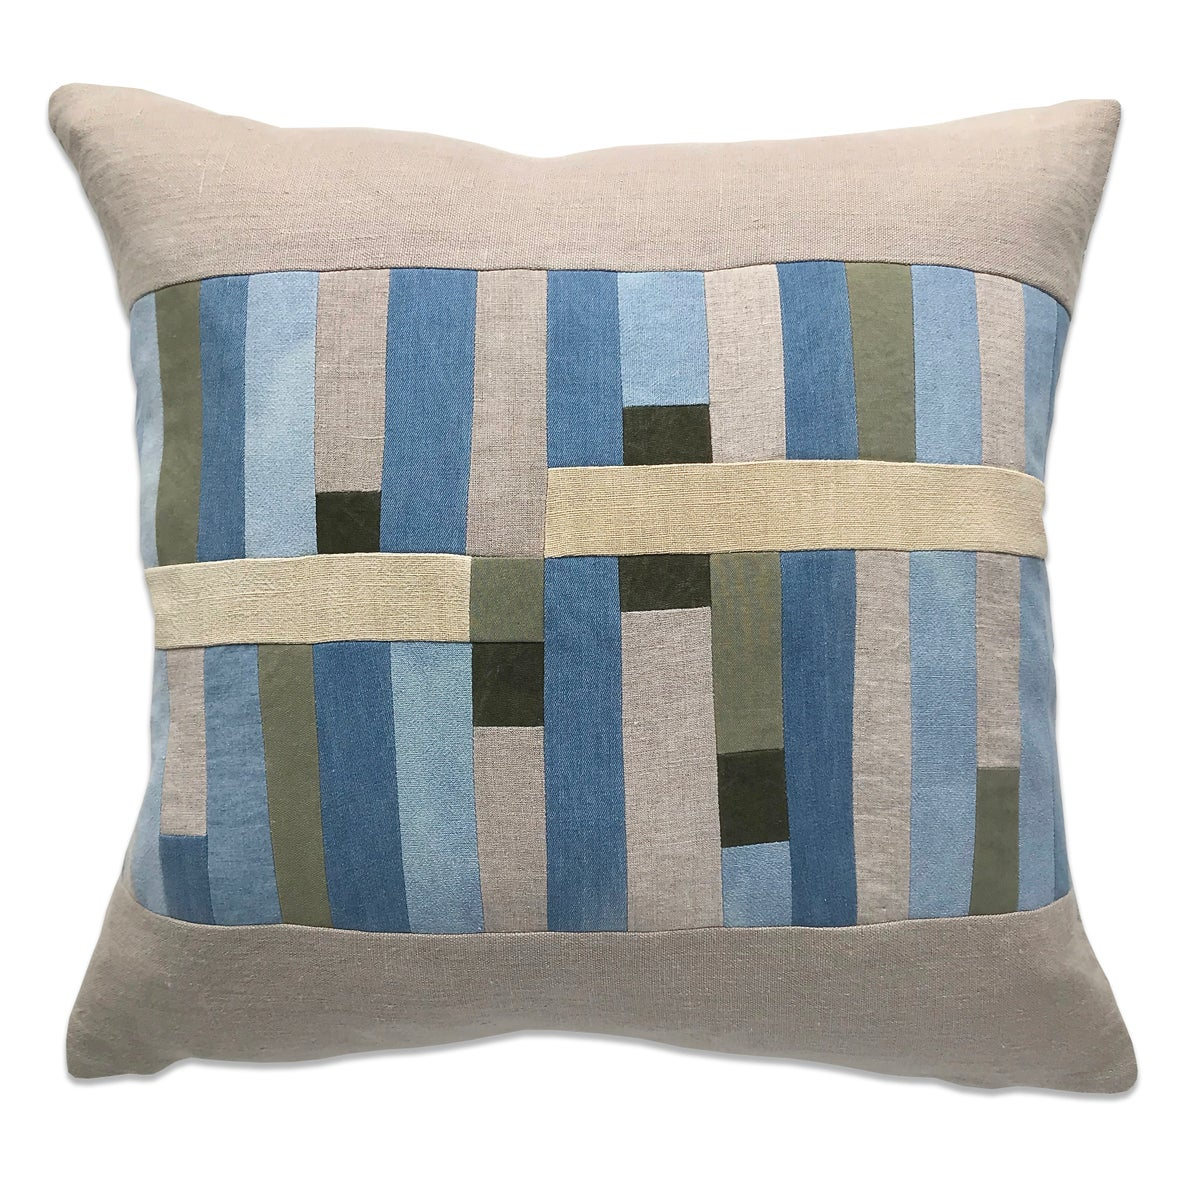 Image of GRAPHIC COLLAGE PILLOW #4